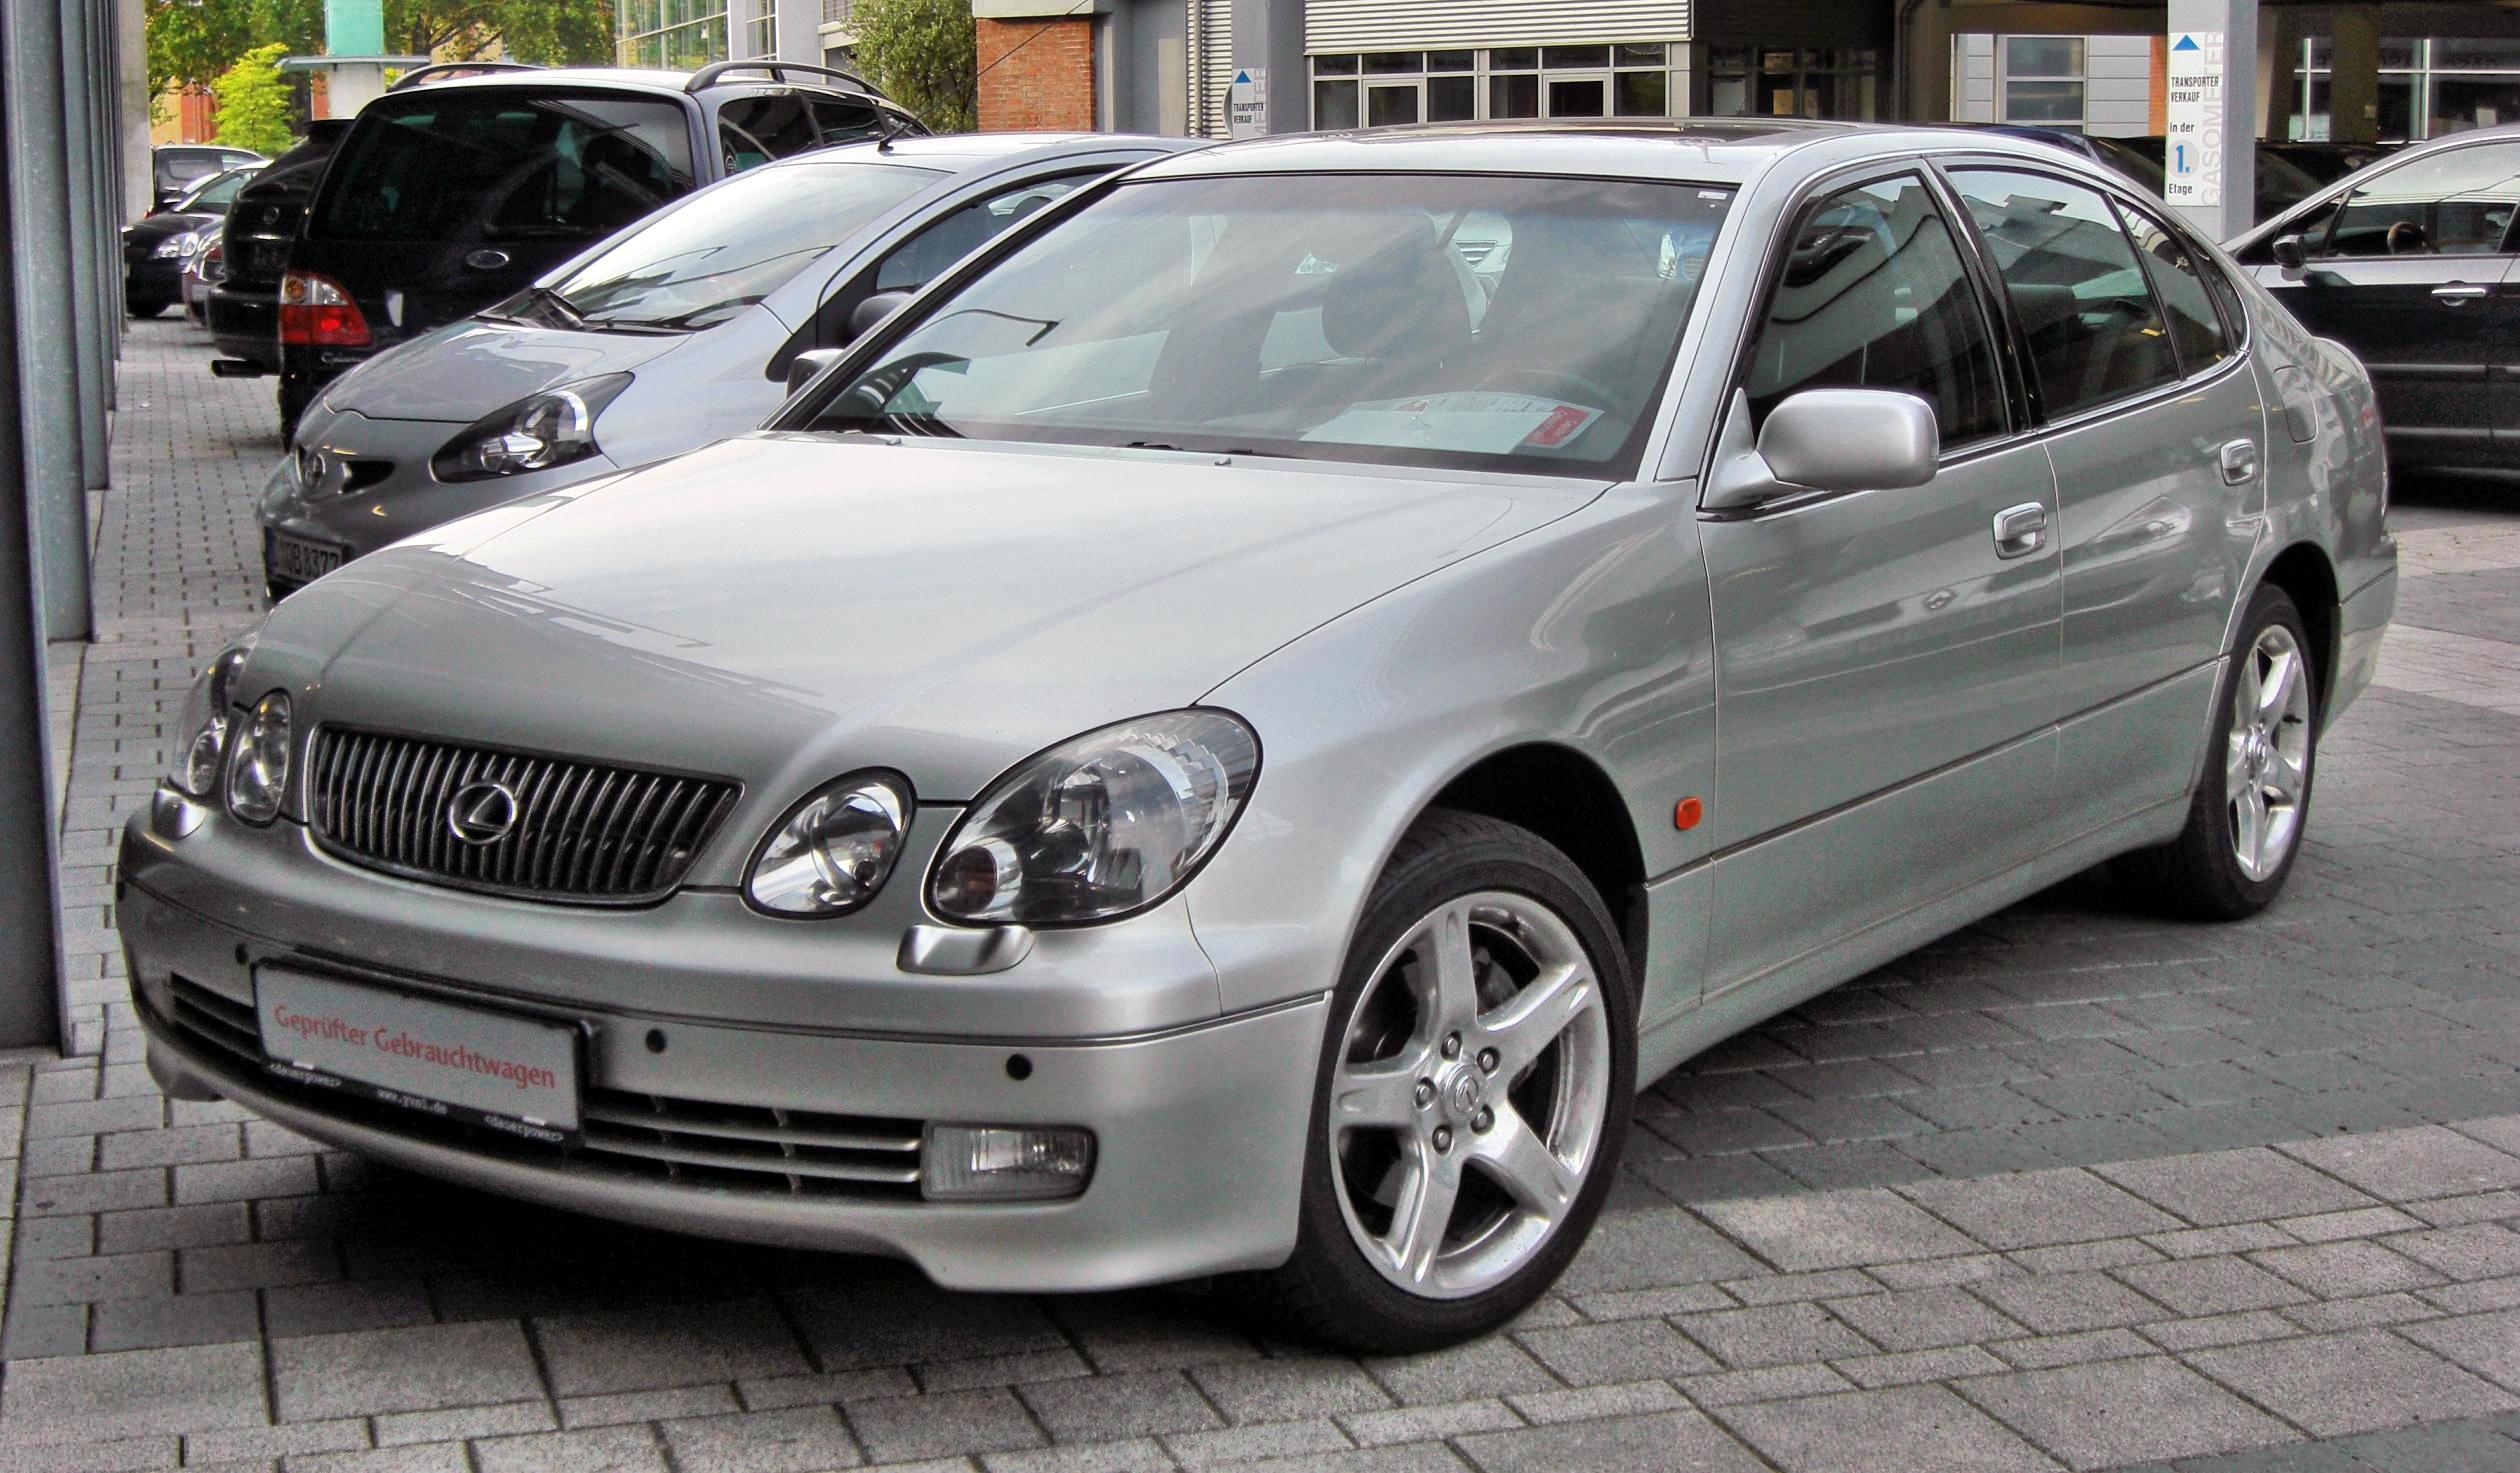 https://upload.wikimedia.org/wikipedia/commons/c/cd/Lexus_GS_430_II_20090720_front.JPG